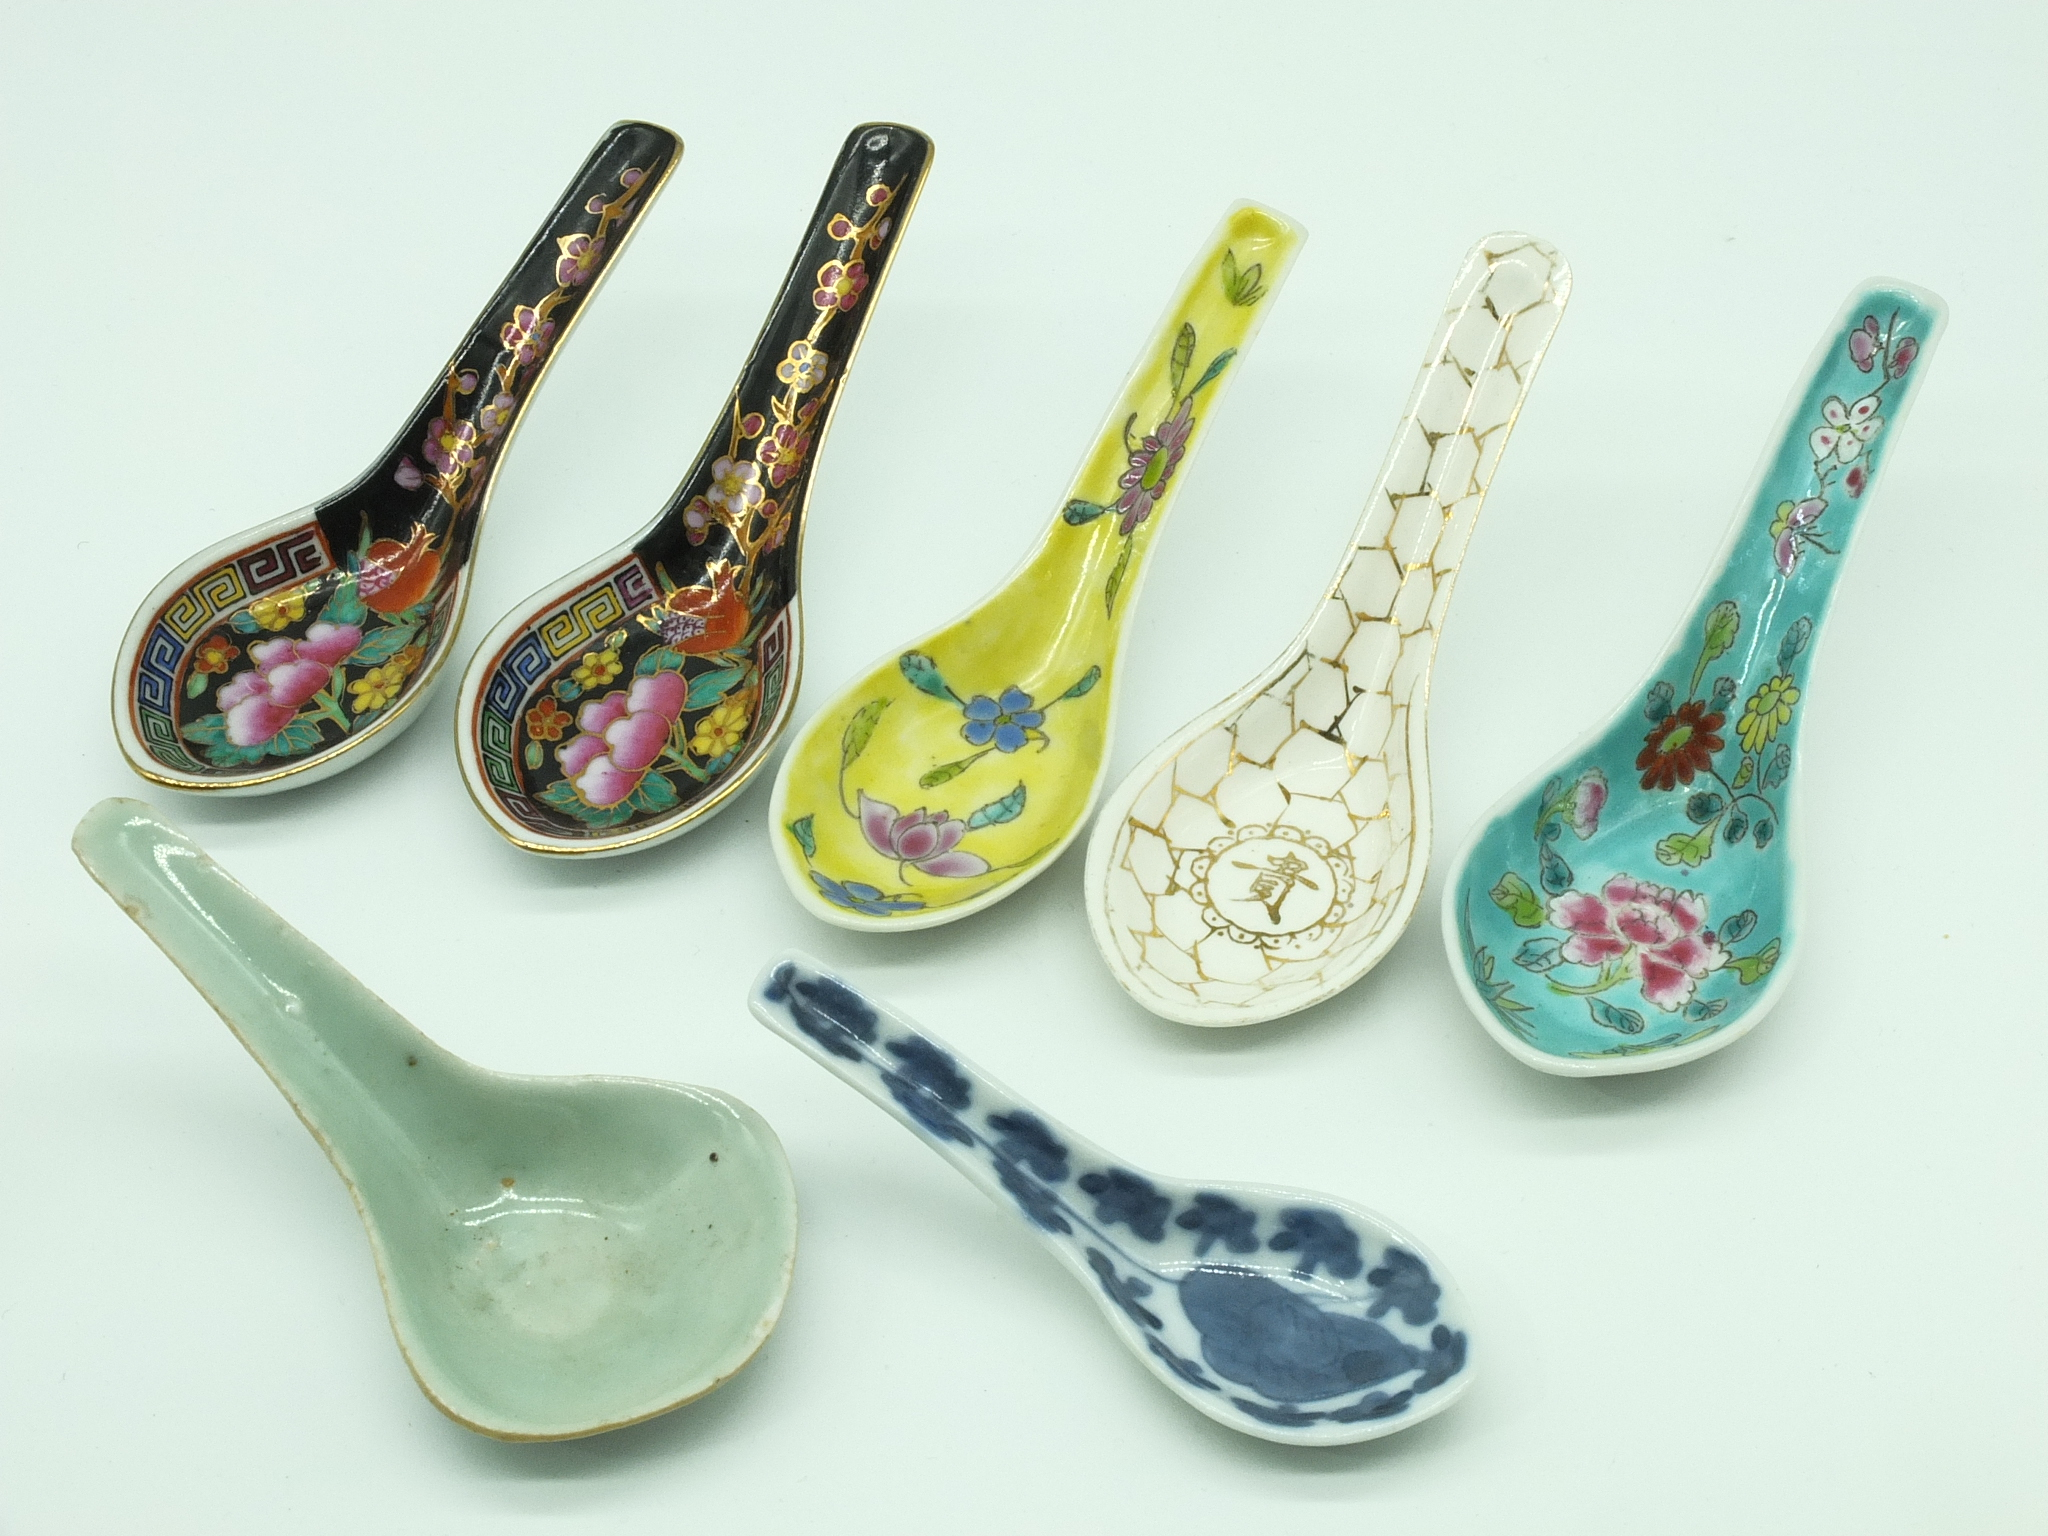 'Seven Various Chinese Porcelain Spoons 20th Century'